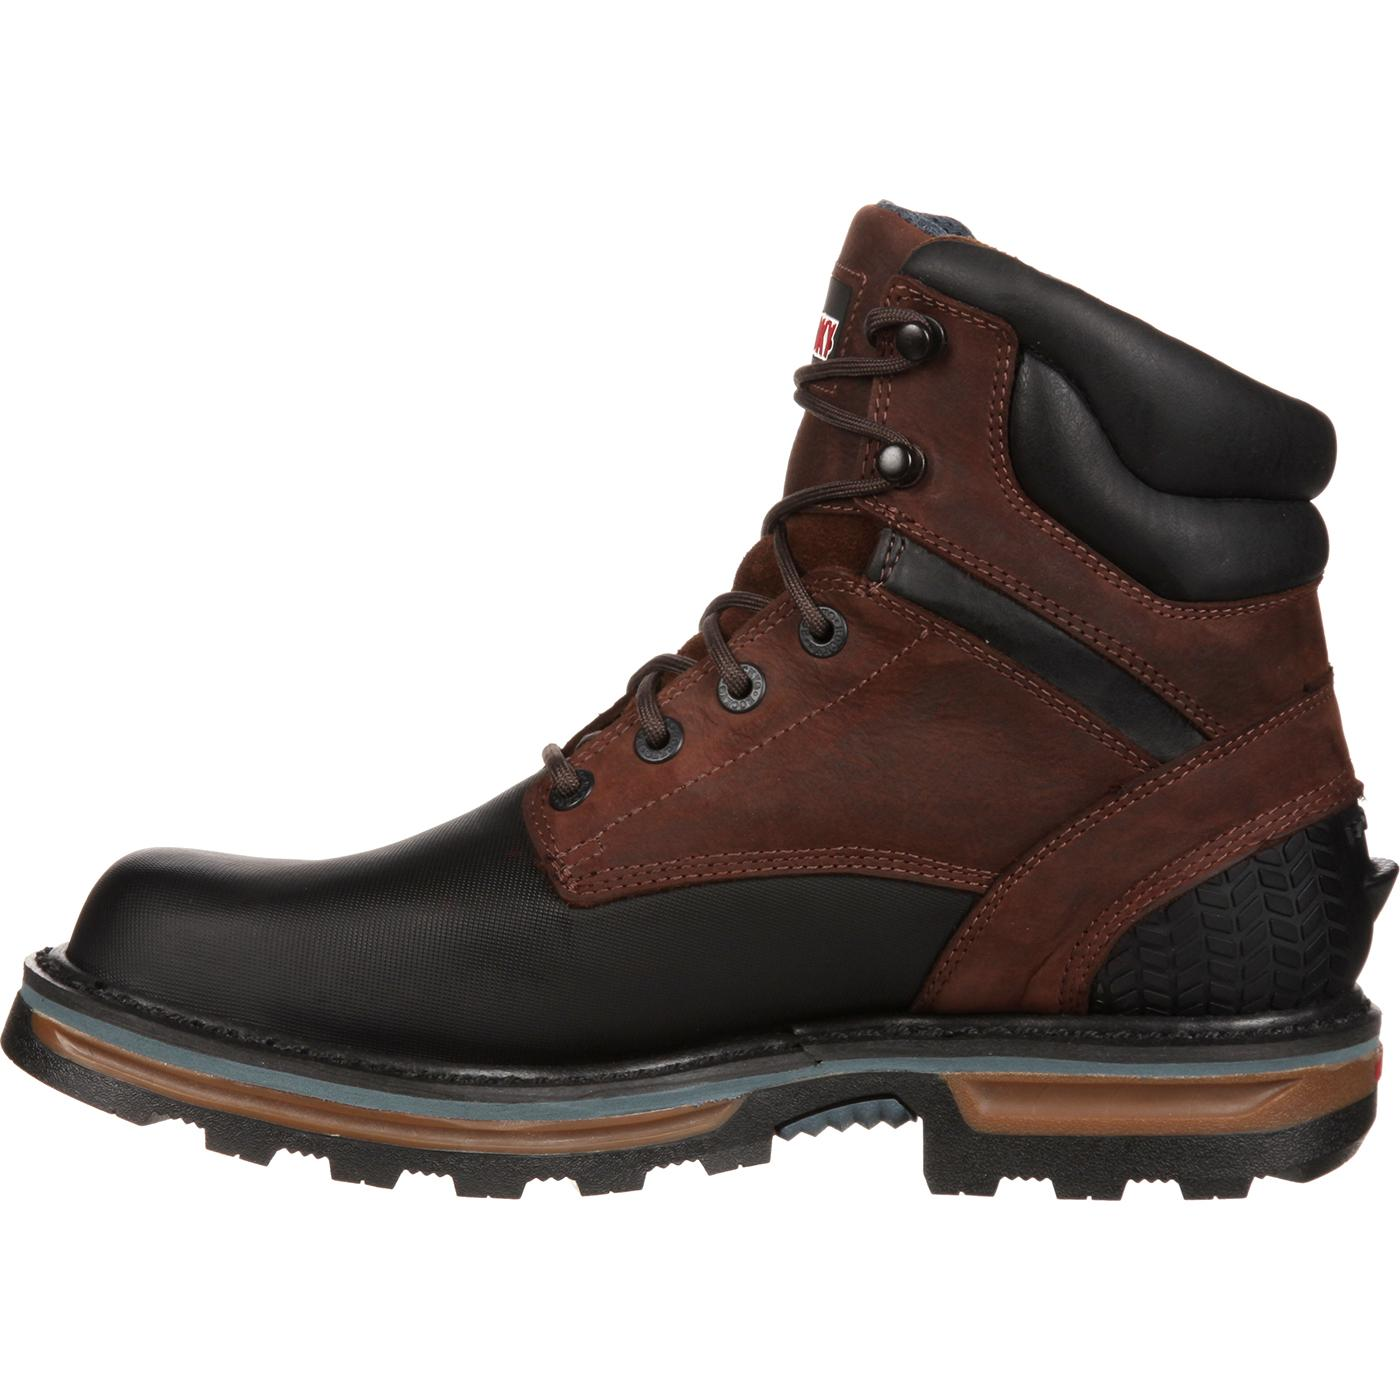 Nov 14,  · 31 Coupon Codes. Lehigh Valley Safety Shoes 1 Coupon Codes. Wolverine 16 Coupon Codes. CAT Footwear 29 Coupon Codes. Safety Girl 18 Coupon Codes. Steel Toe Shoes 48 Coupon Codes. Georgia Boot 50 Coupon Codes. Shoes For Crews 44 Coupon Codes. Work Boots USA 27 Coupon Codes. Working Persons Store 48 Coupon Codes. Slip Grips 19 Coupon Codes. .